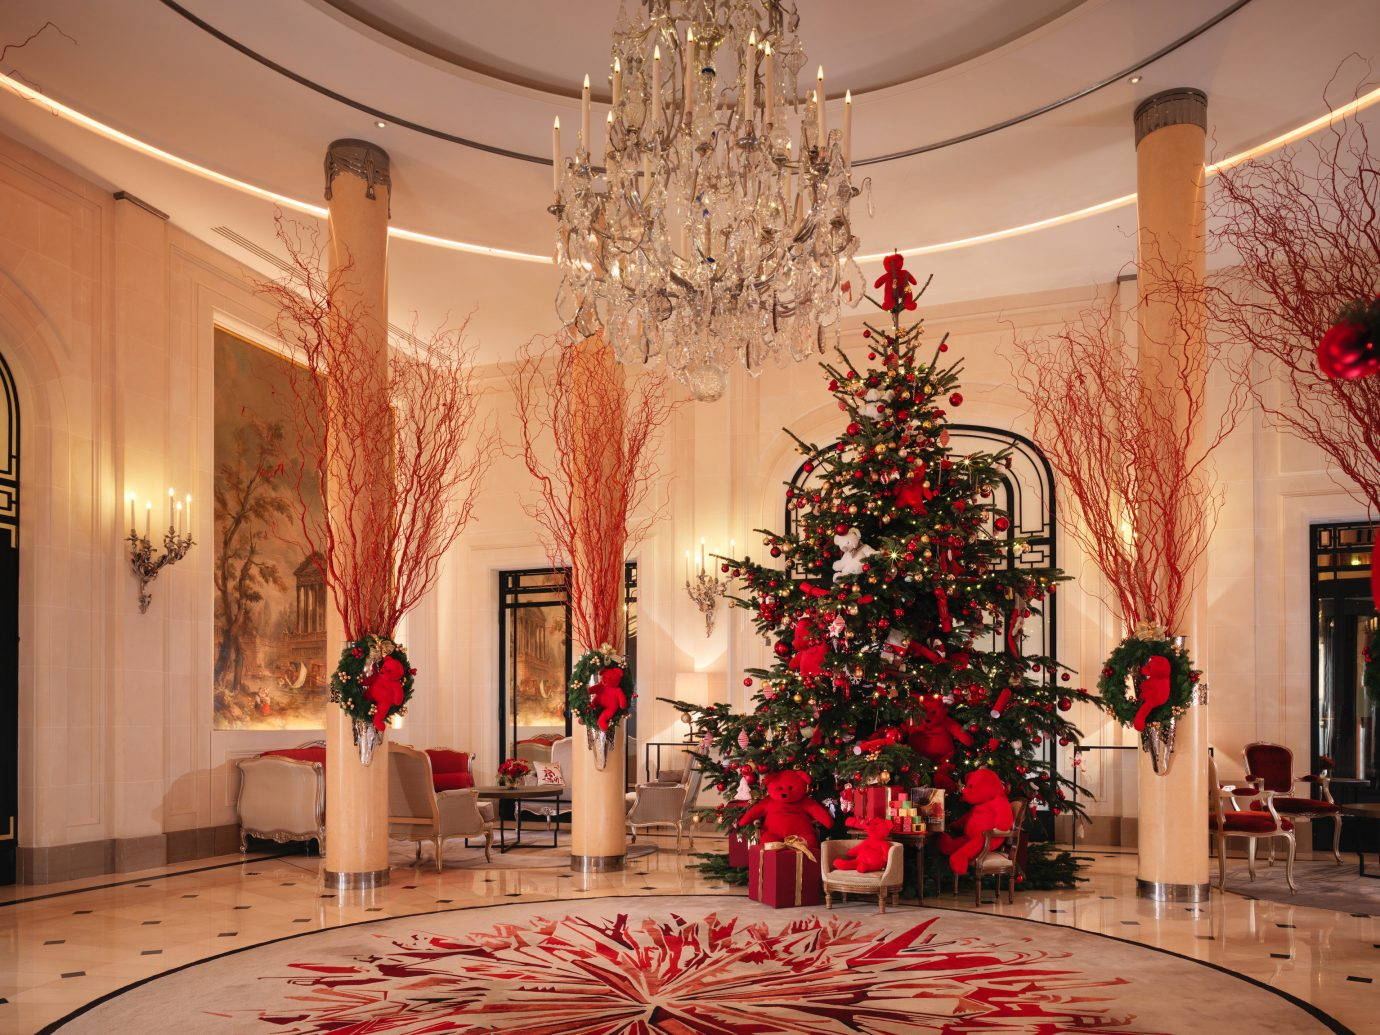 Best Hotel Lobbies for the Holidays